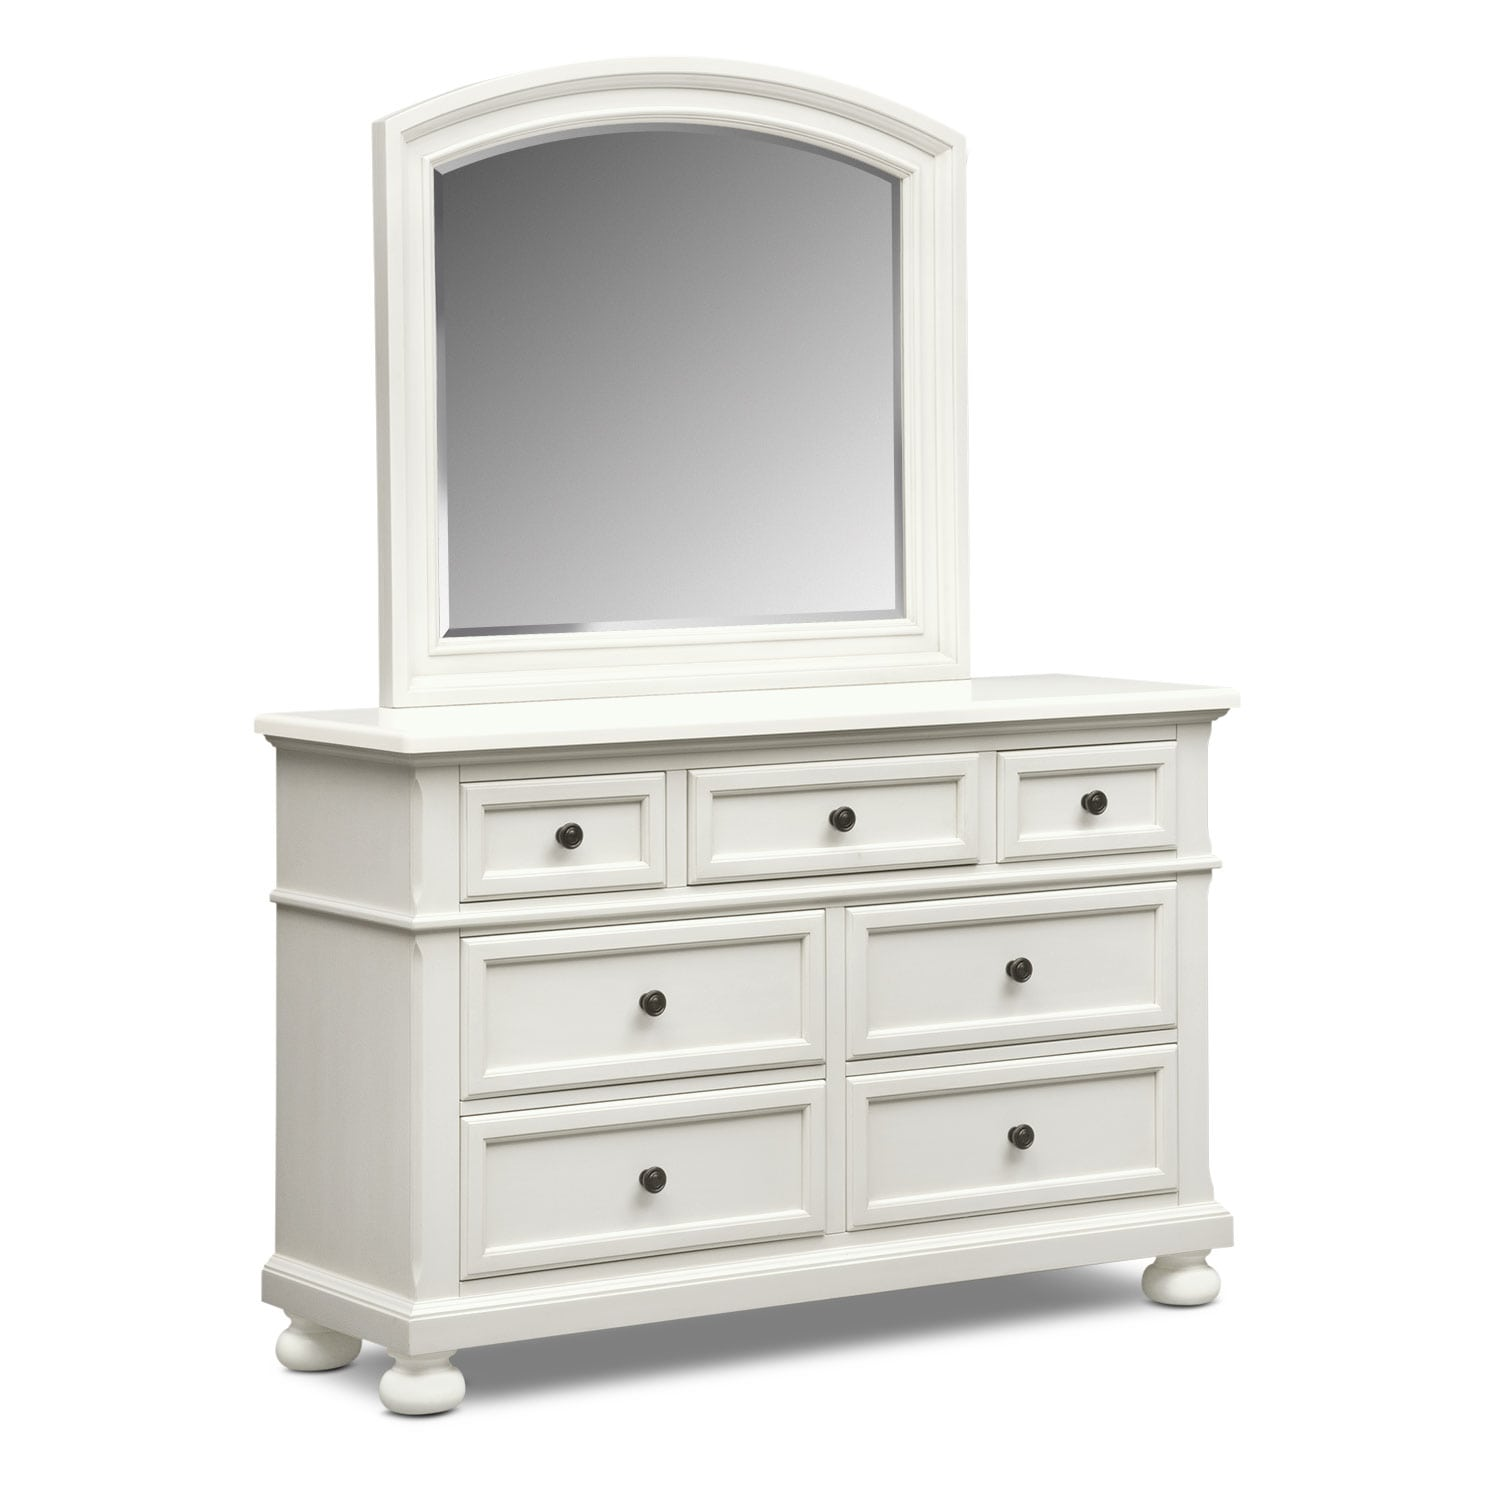 Hanover Youth Dresser and Mirror - White